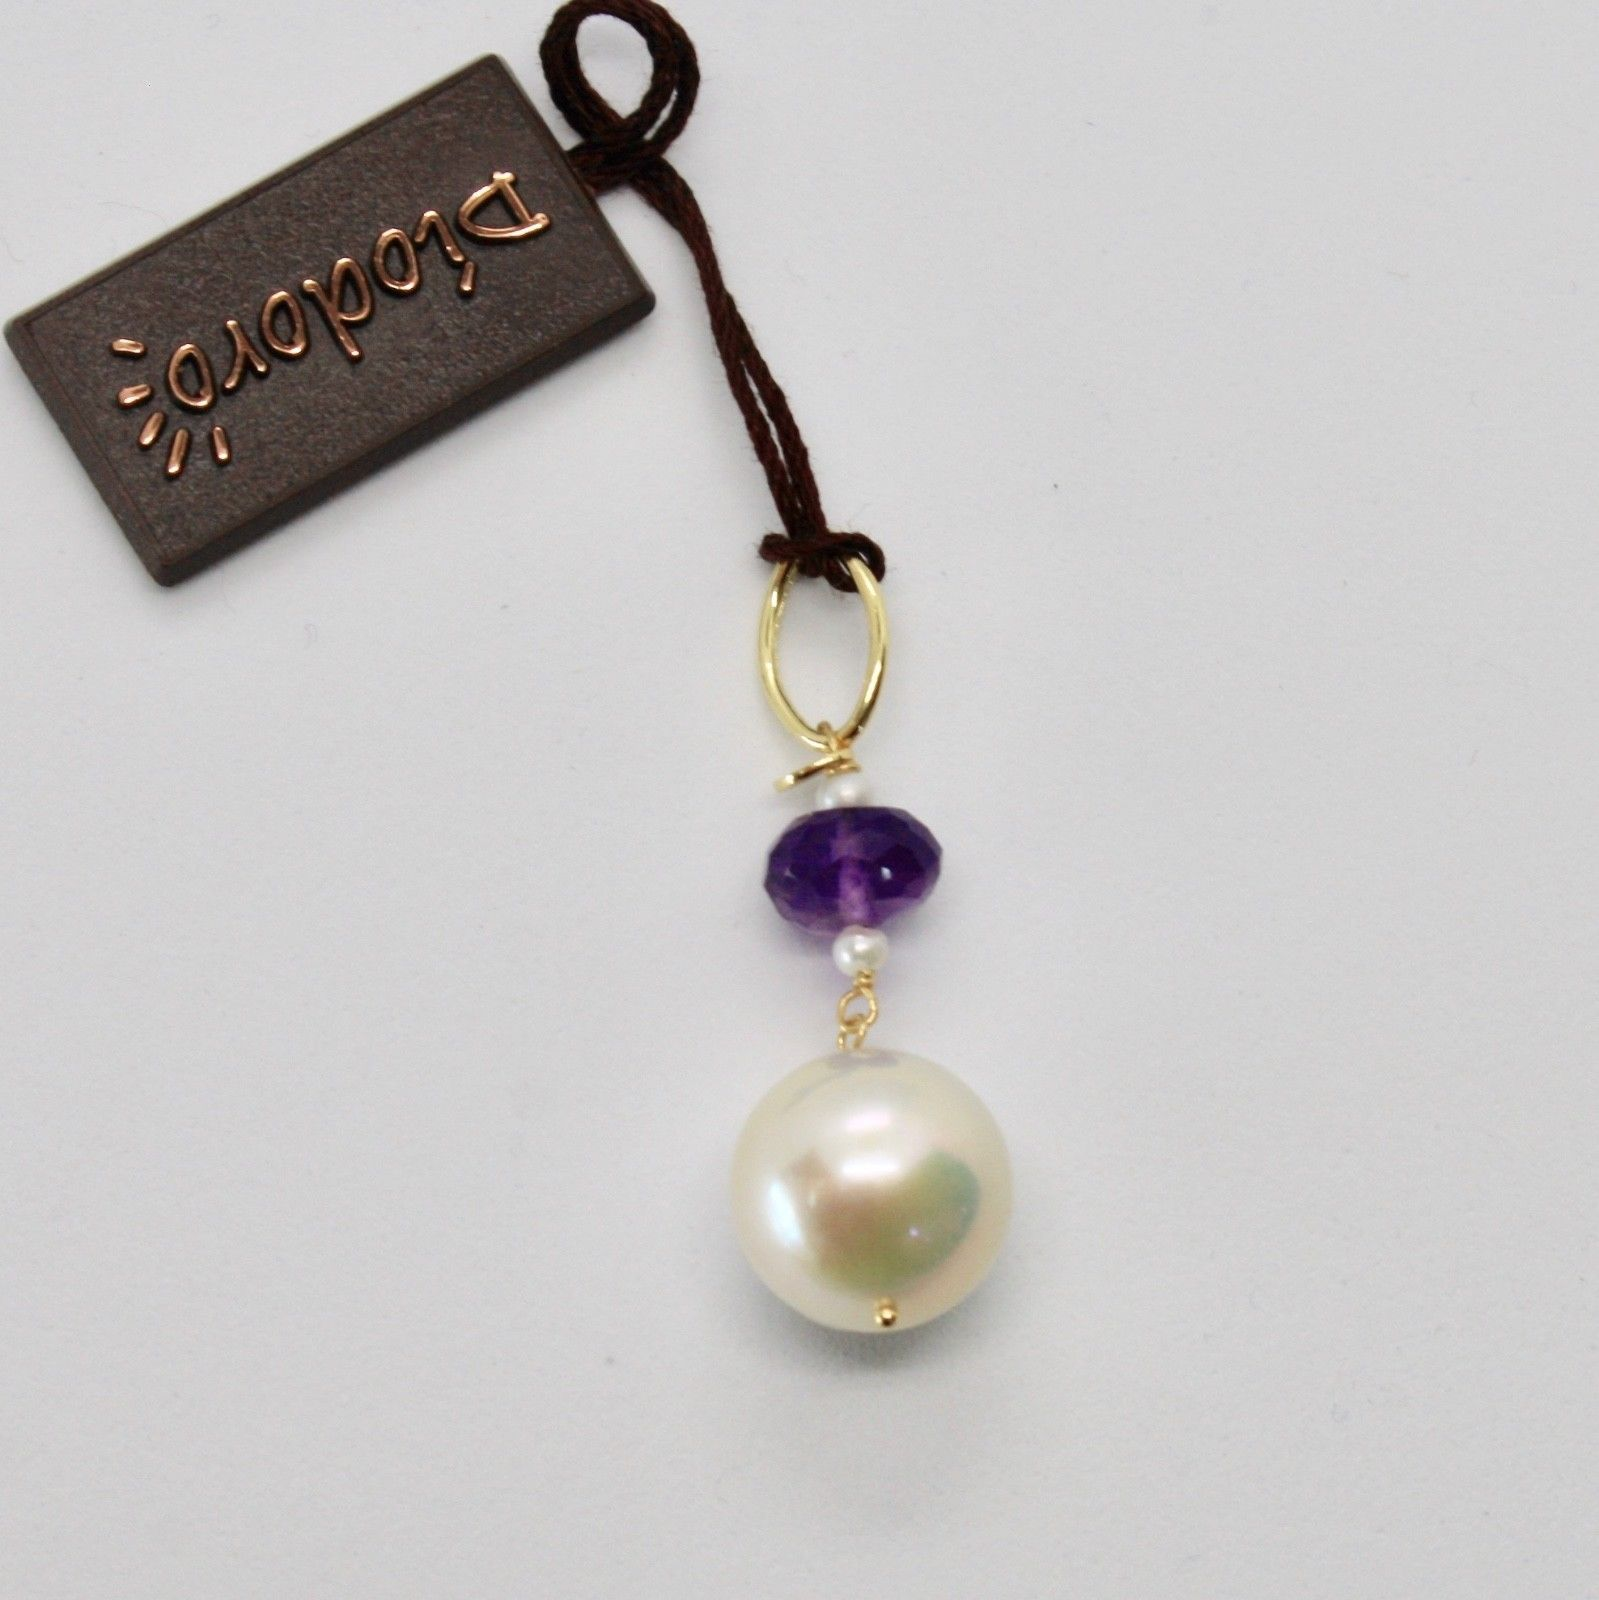 SOLID 18K YELLOW GOLD PENDANT WITH WHITE FW PEARL AND AMETHYST,  MADE IN ITALY